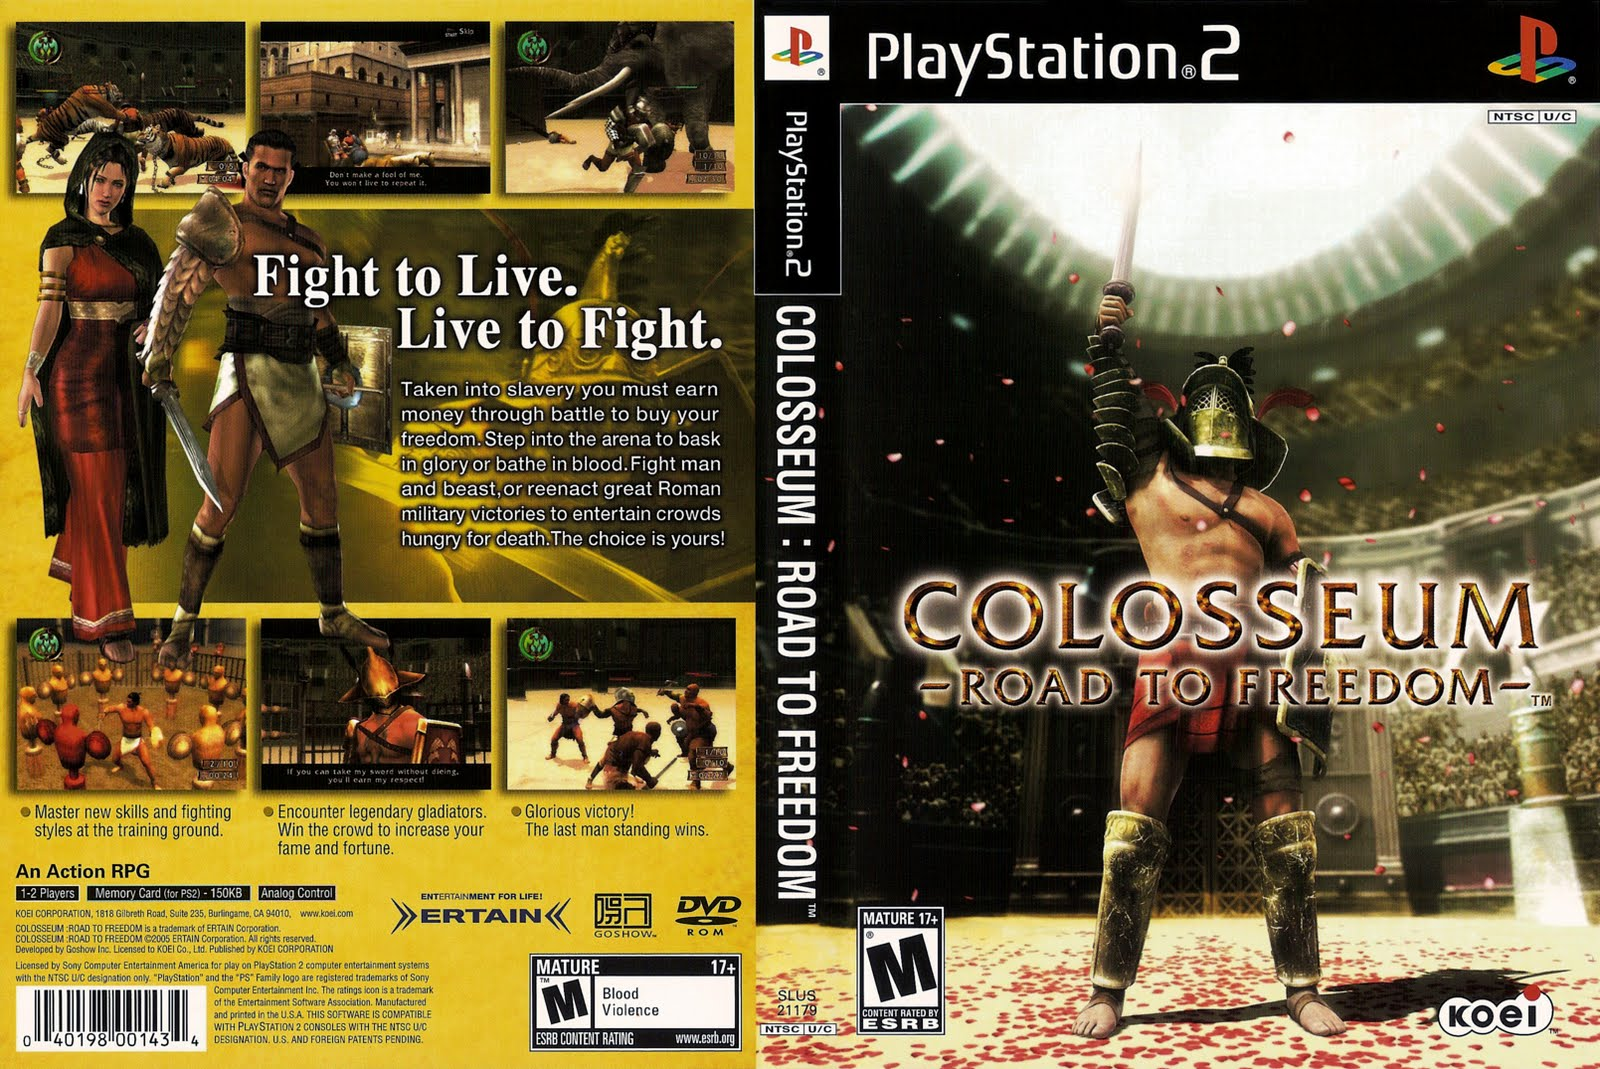 Ps2 Iso Image